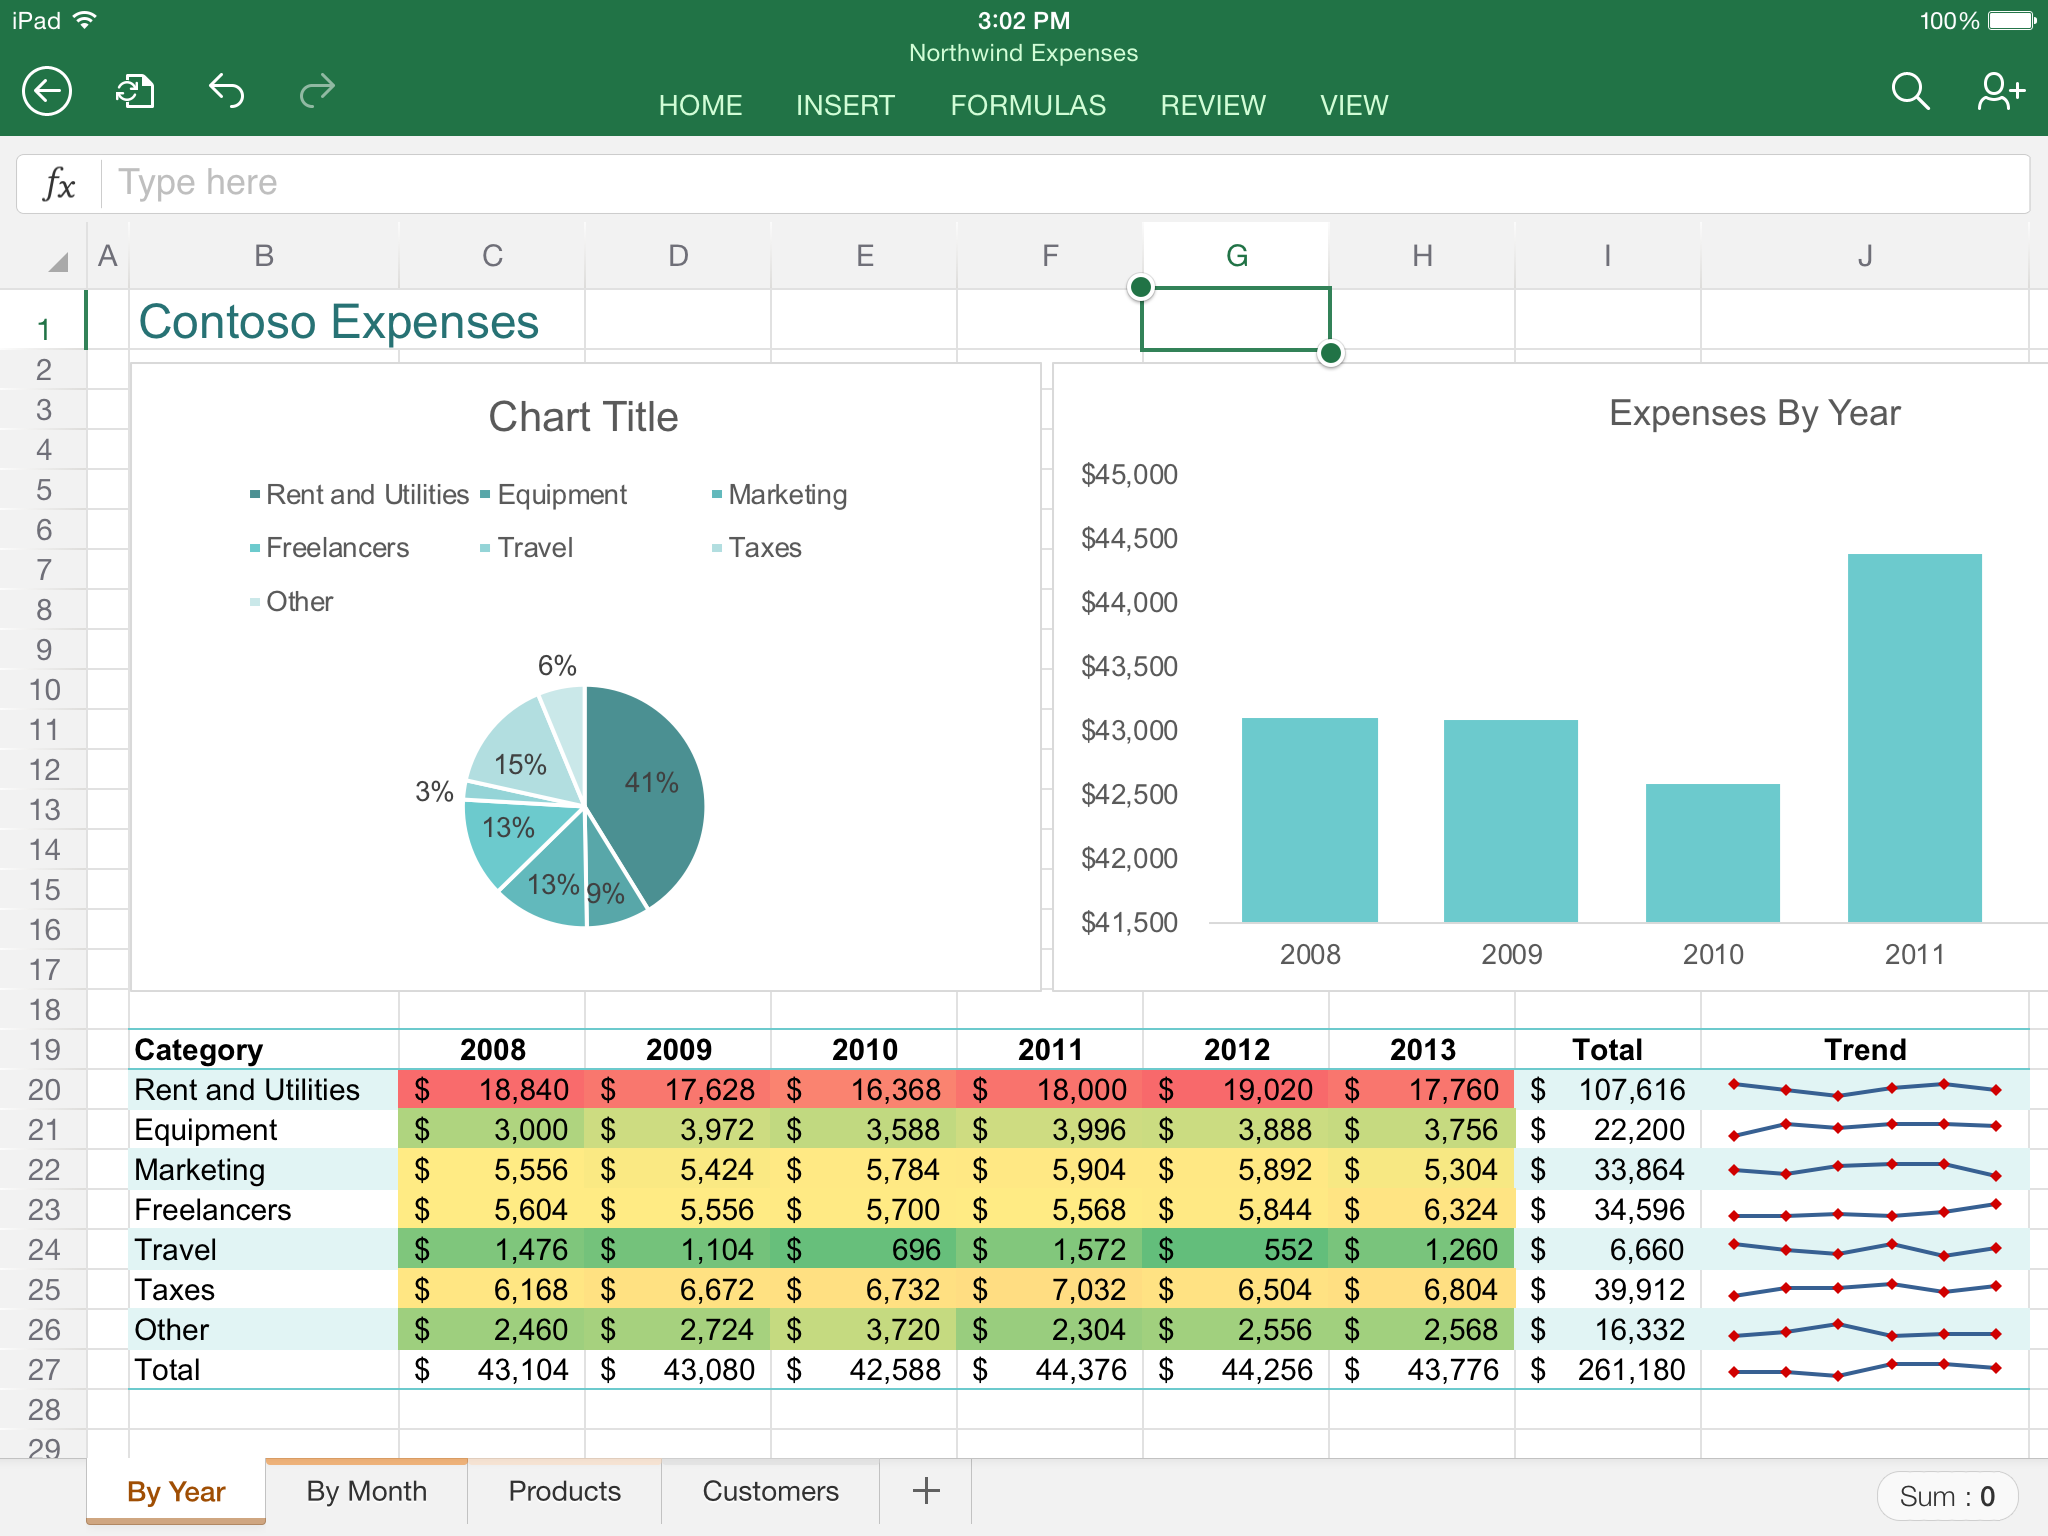 Ediblewildsus  Unique App Highlight Excel  Mobile Digital Now With Likable Excel In Action With Cool Excel  Also How To Use Regression In Excel In Addition Excel Isblank And Calculating Confidence Interval In Excel As Well As Excel Remove Duplicate Rows Additionally Mail Merge Excel To Word From Youstonybrookedu With Ediblewildsus  Likable App Highlight Excel  Mobile Digital Now With Cool Excel In Action And Unique Excel  Also How To Use Regression In Excel In Addition Excel Isblank From Youstonybrookedu